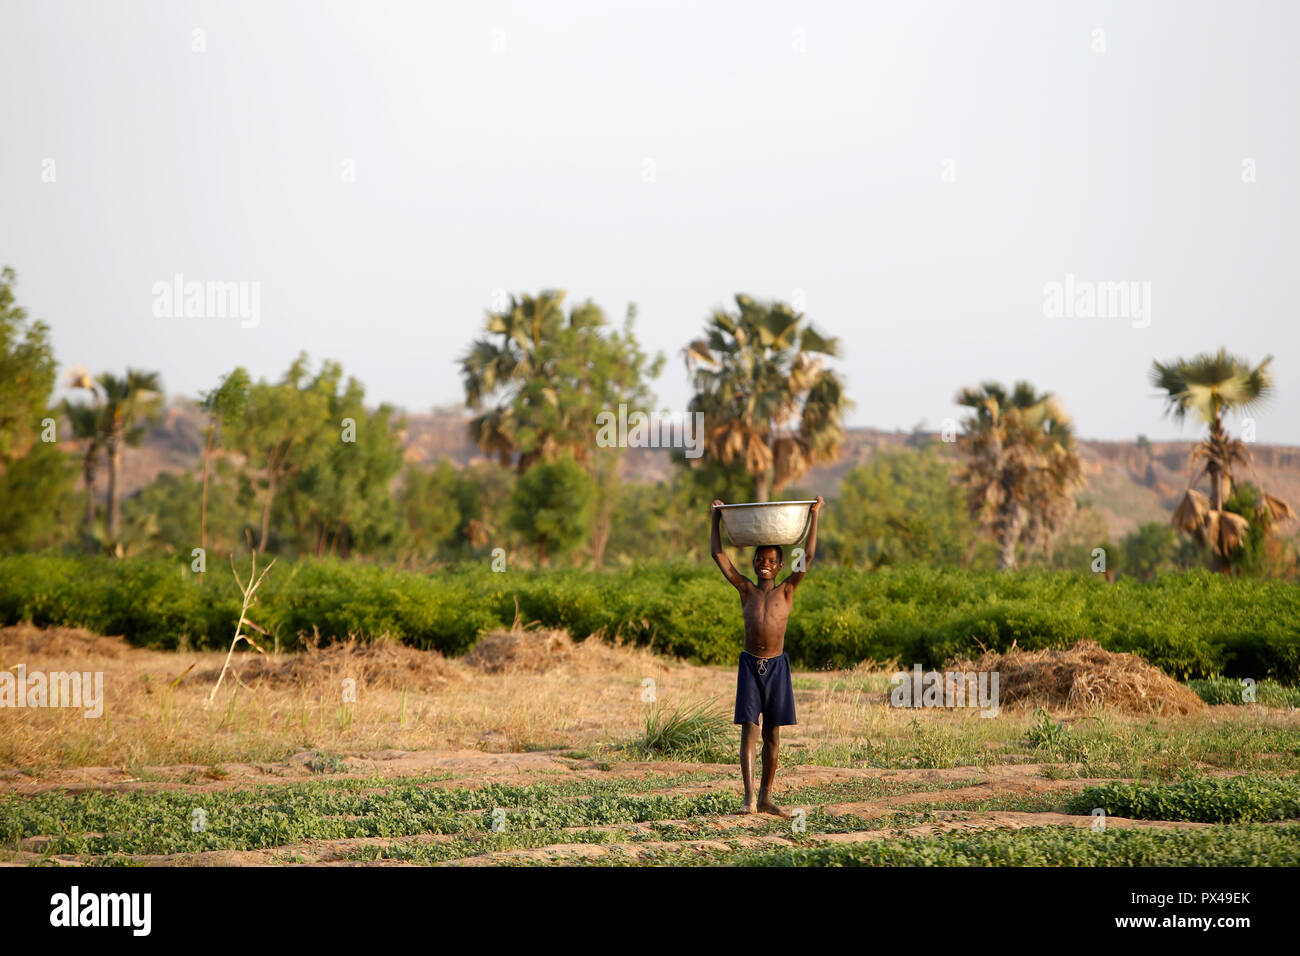 Togolese boy carrying water for irrigation in Karsome, Togo. - Stock Image